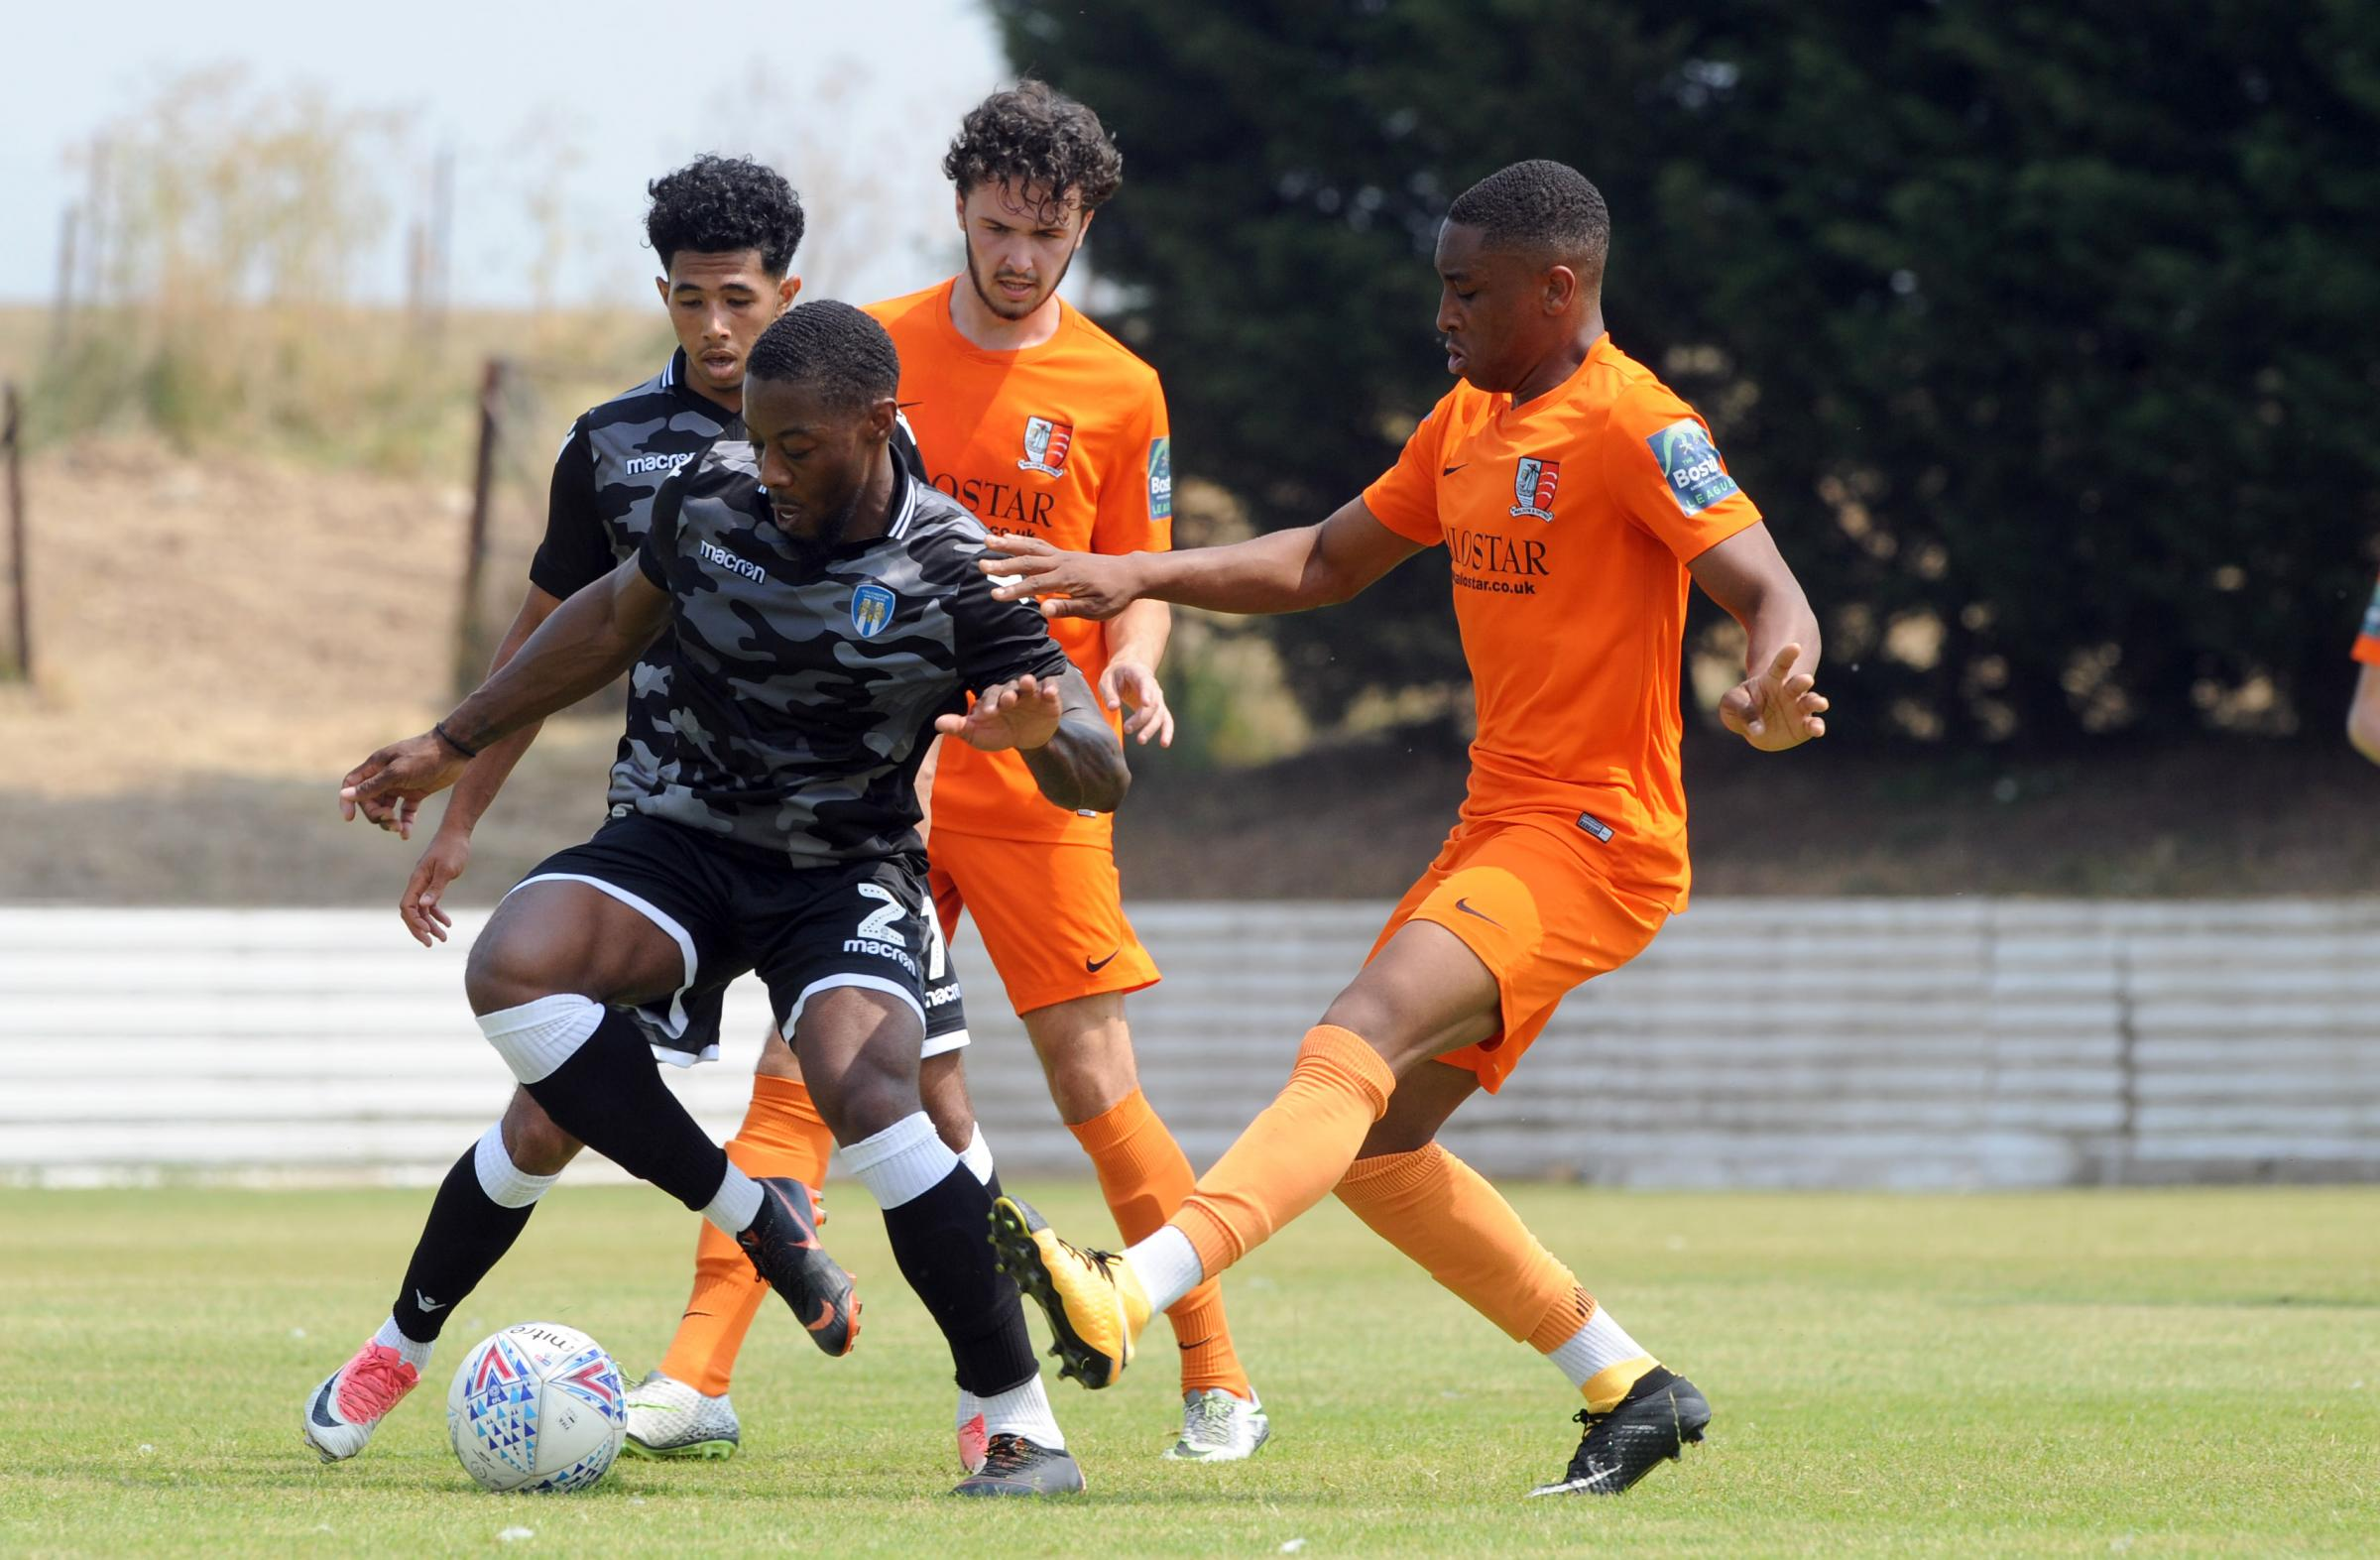 On the ball - Colchester United right-back Ryan Jackson (left) shields the ball in their 4-1 friendly win at Maldon and Tiptree Picture: LUAN MARSHALL